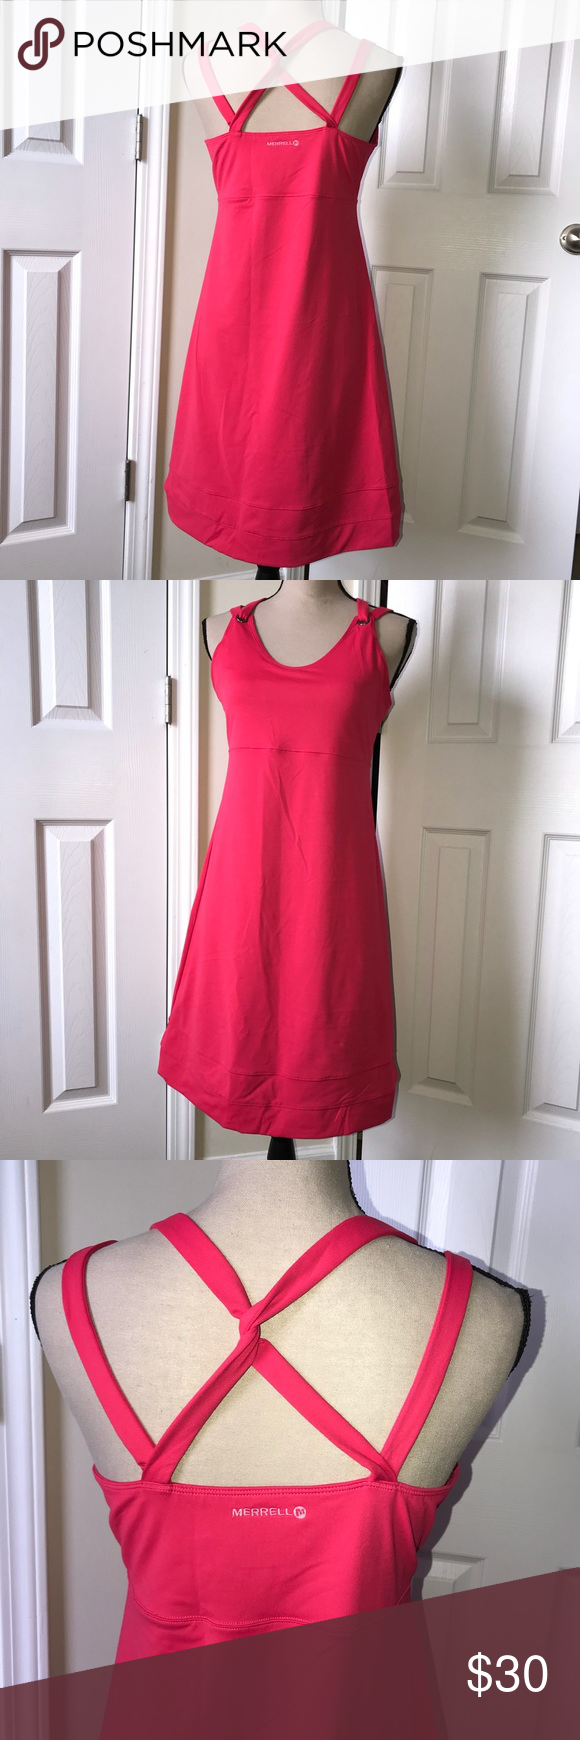 9d6b734fd9c2f9 Merrel Strappy Lily Dress M Like NEW! Great condition. No rips holes or  stains